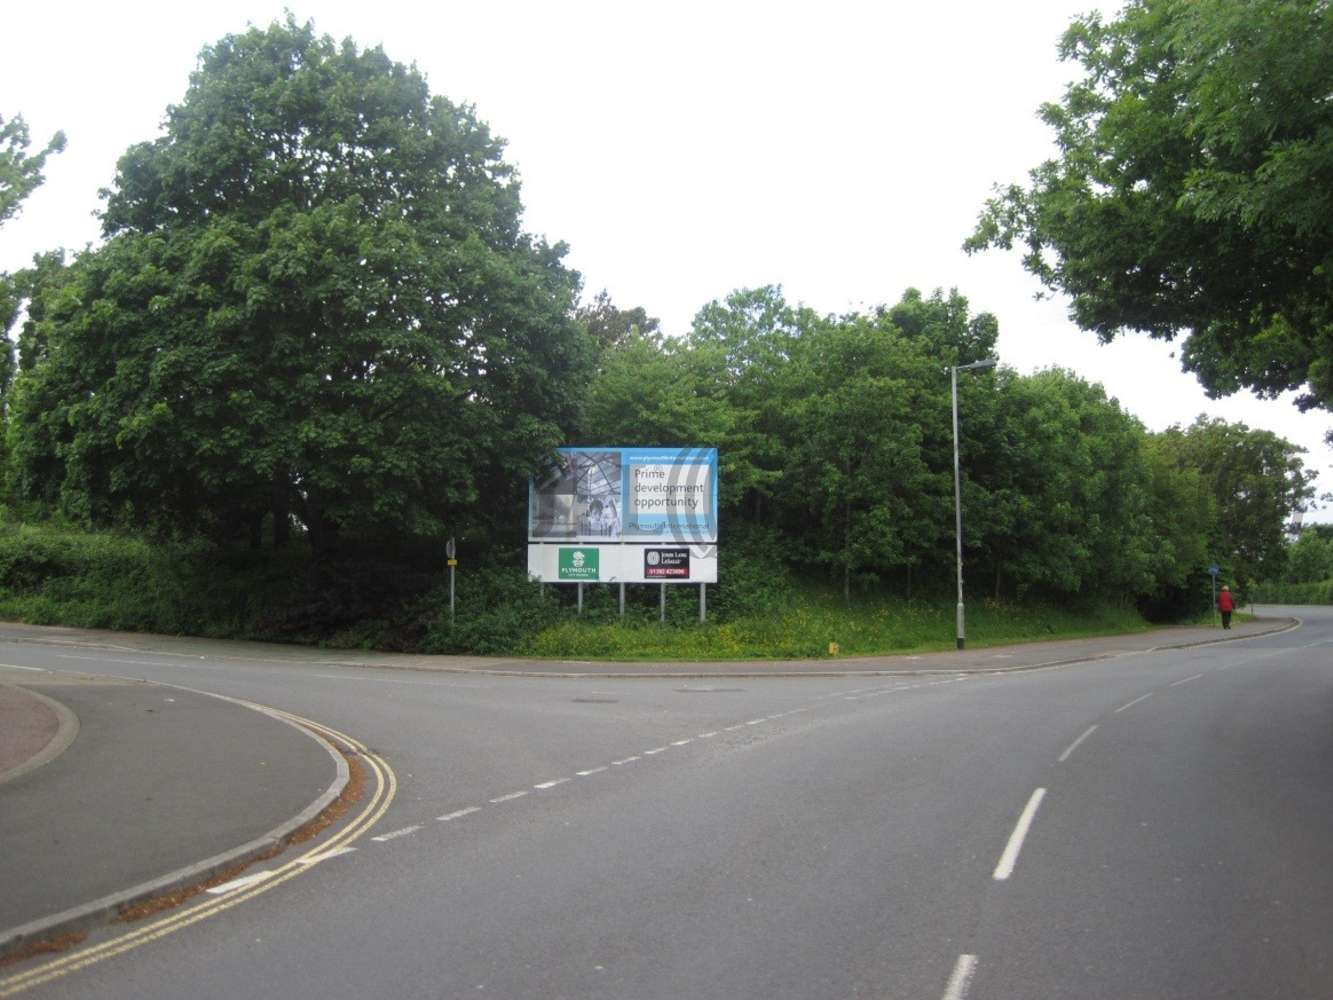 Land Plymouth, PL6 5WR - Part Plot B240 - 240